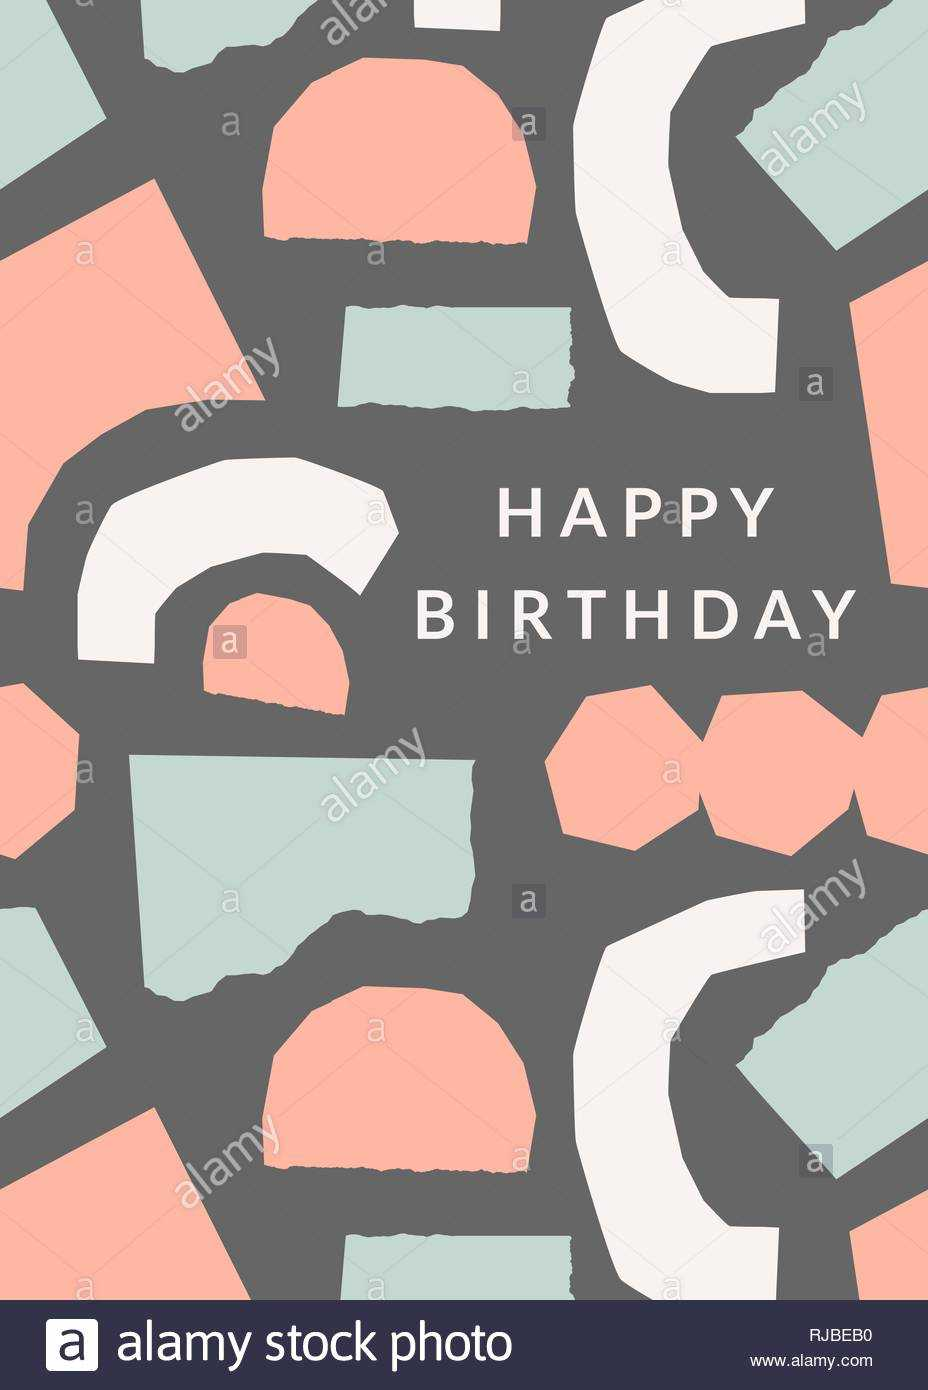 Greeting Card Template With Torn Paper Pieces In Pastel Inside Birthday Card Collage Template